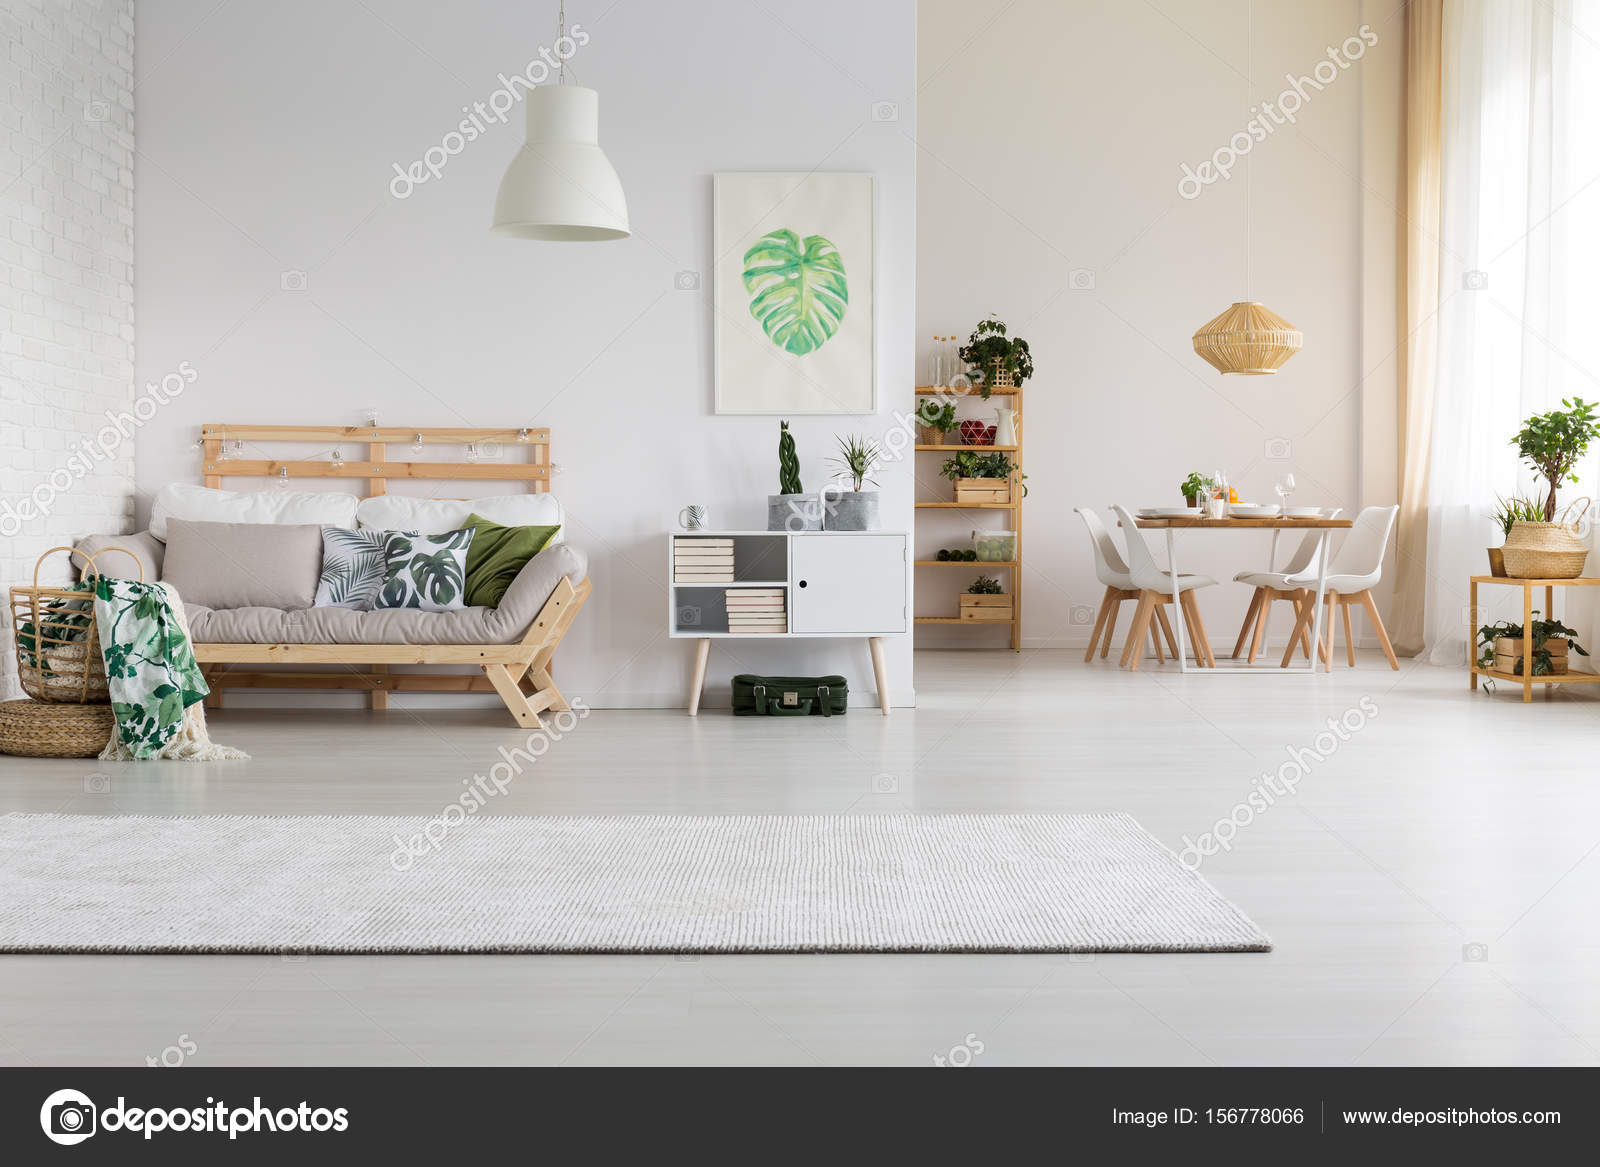 Well Designed Home Space U2014 Stock Photo